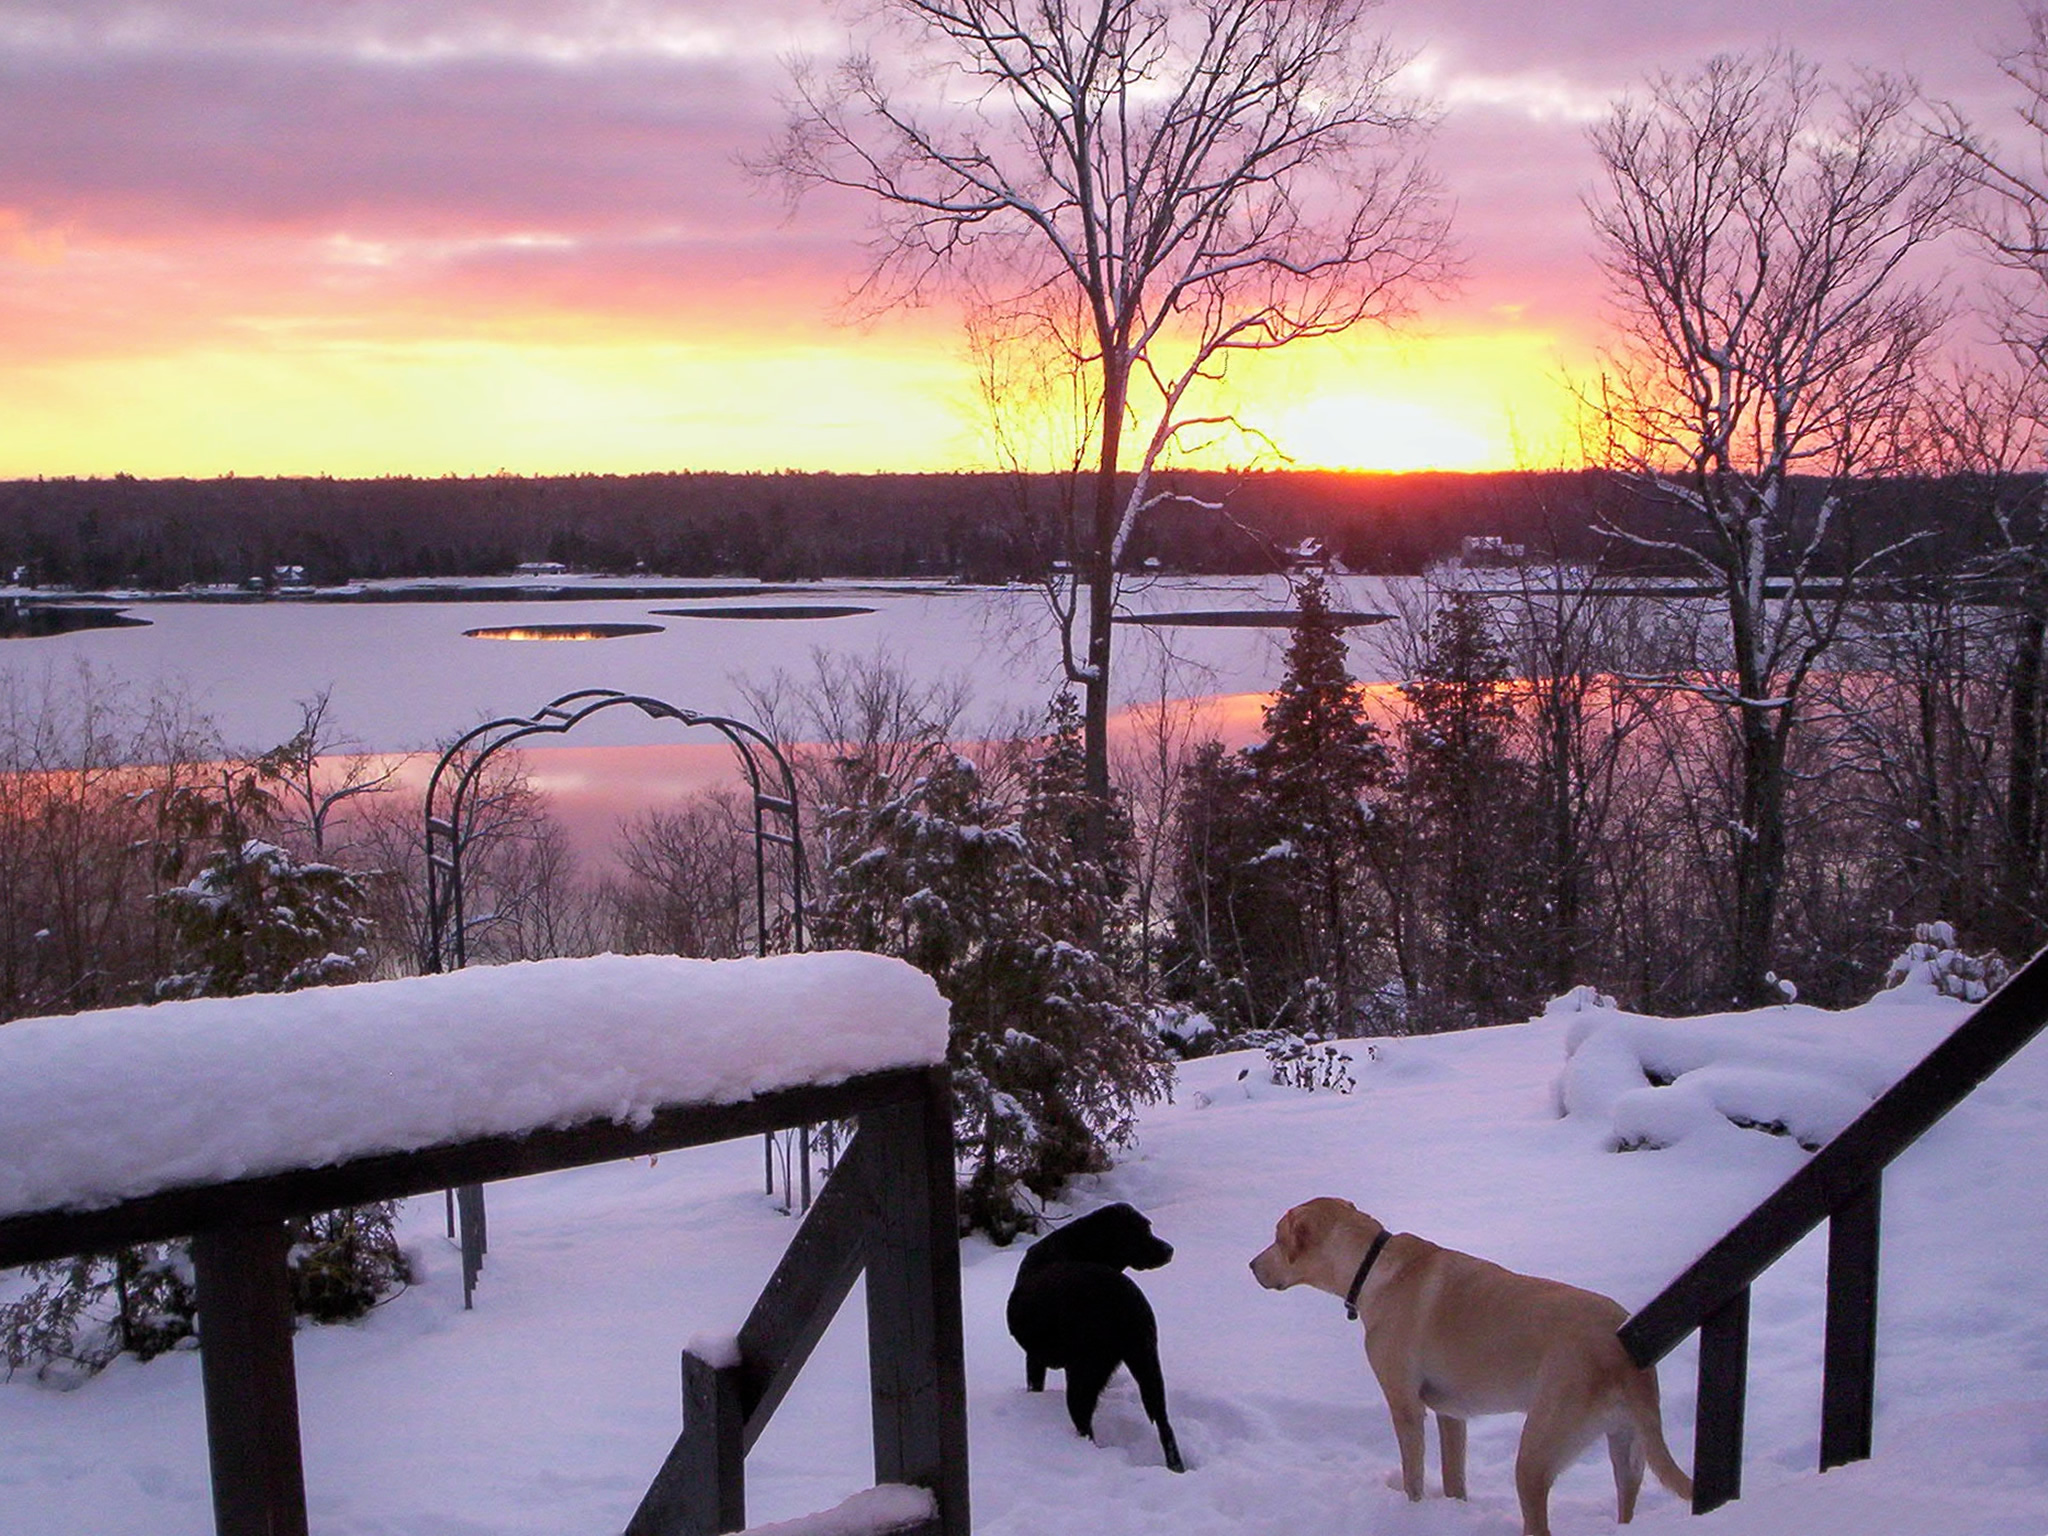 two-dogs-playing-in-the-snow-during-sunset.jpg